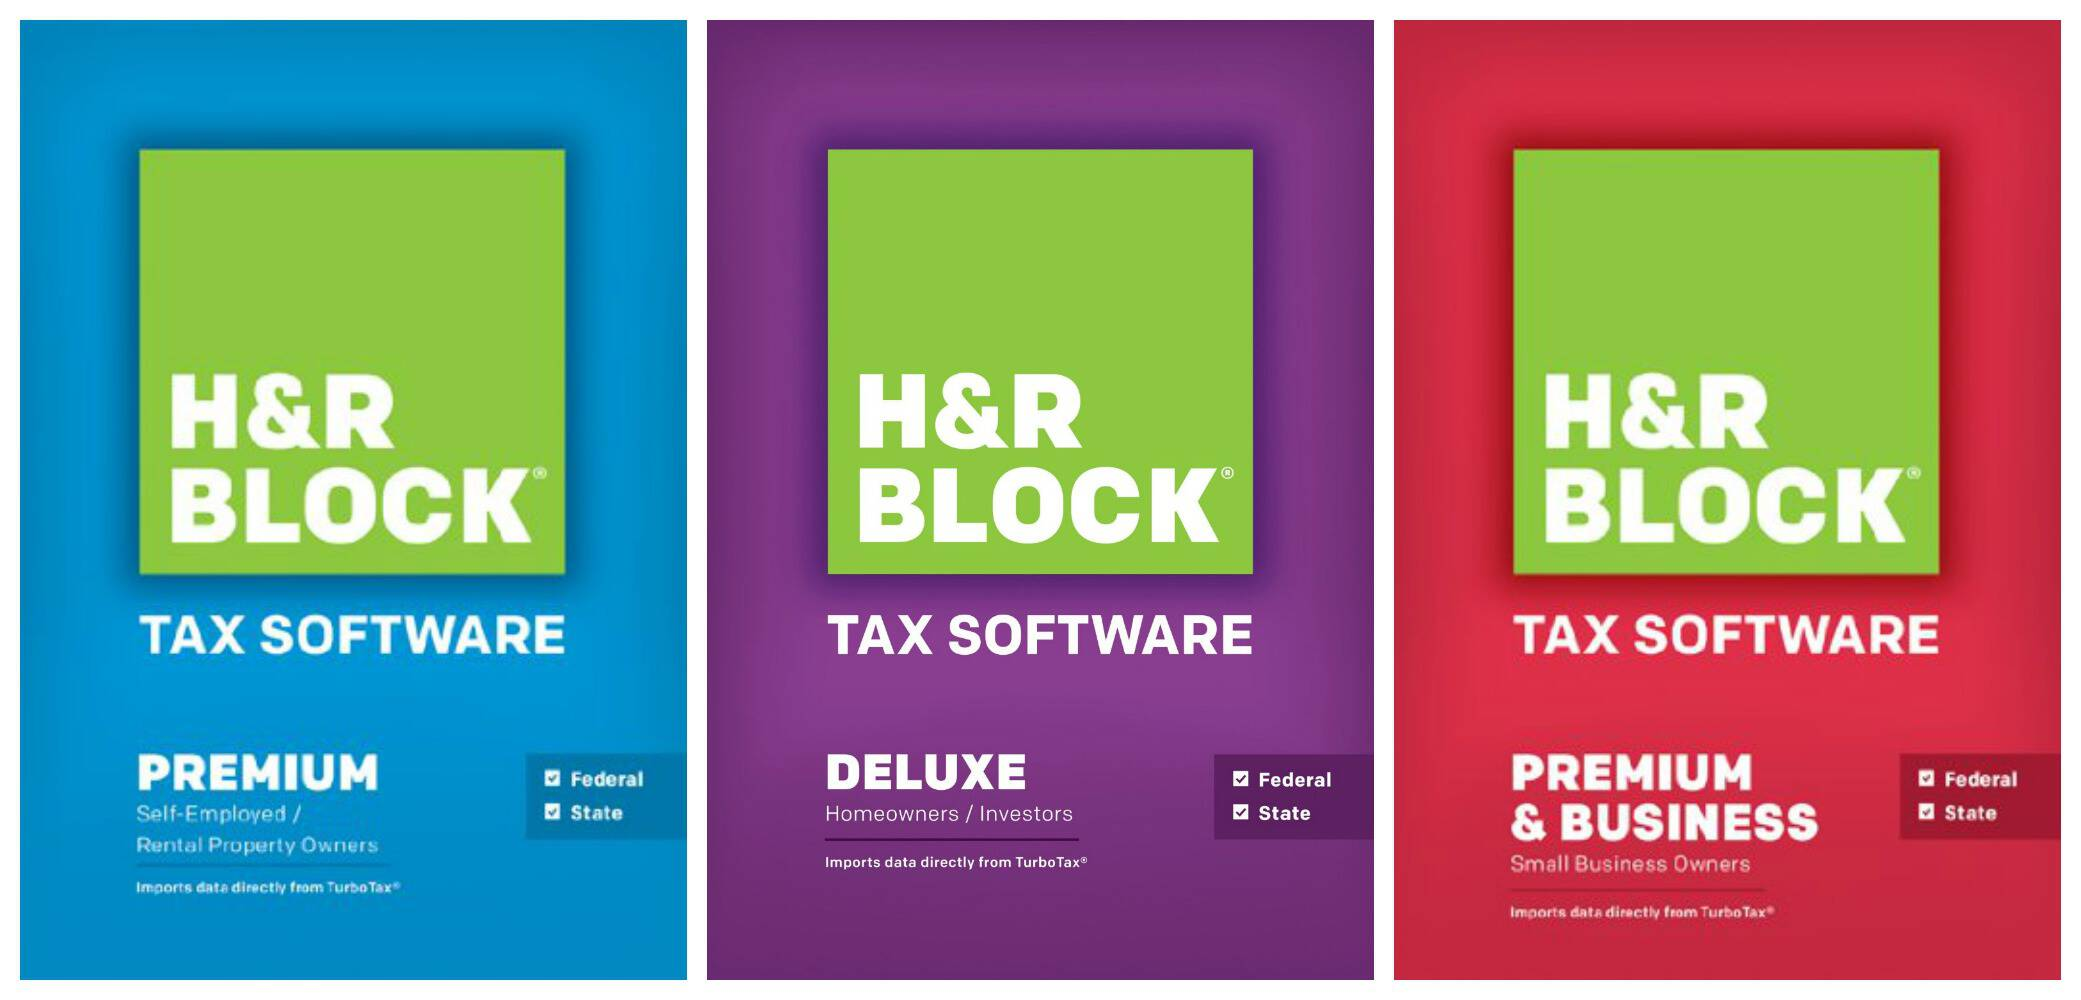 H&R Block Tax Software